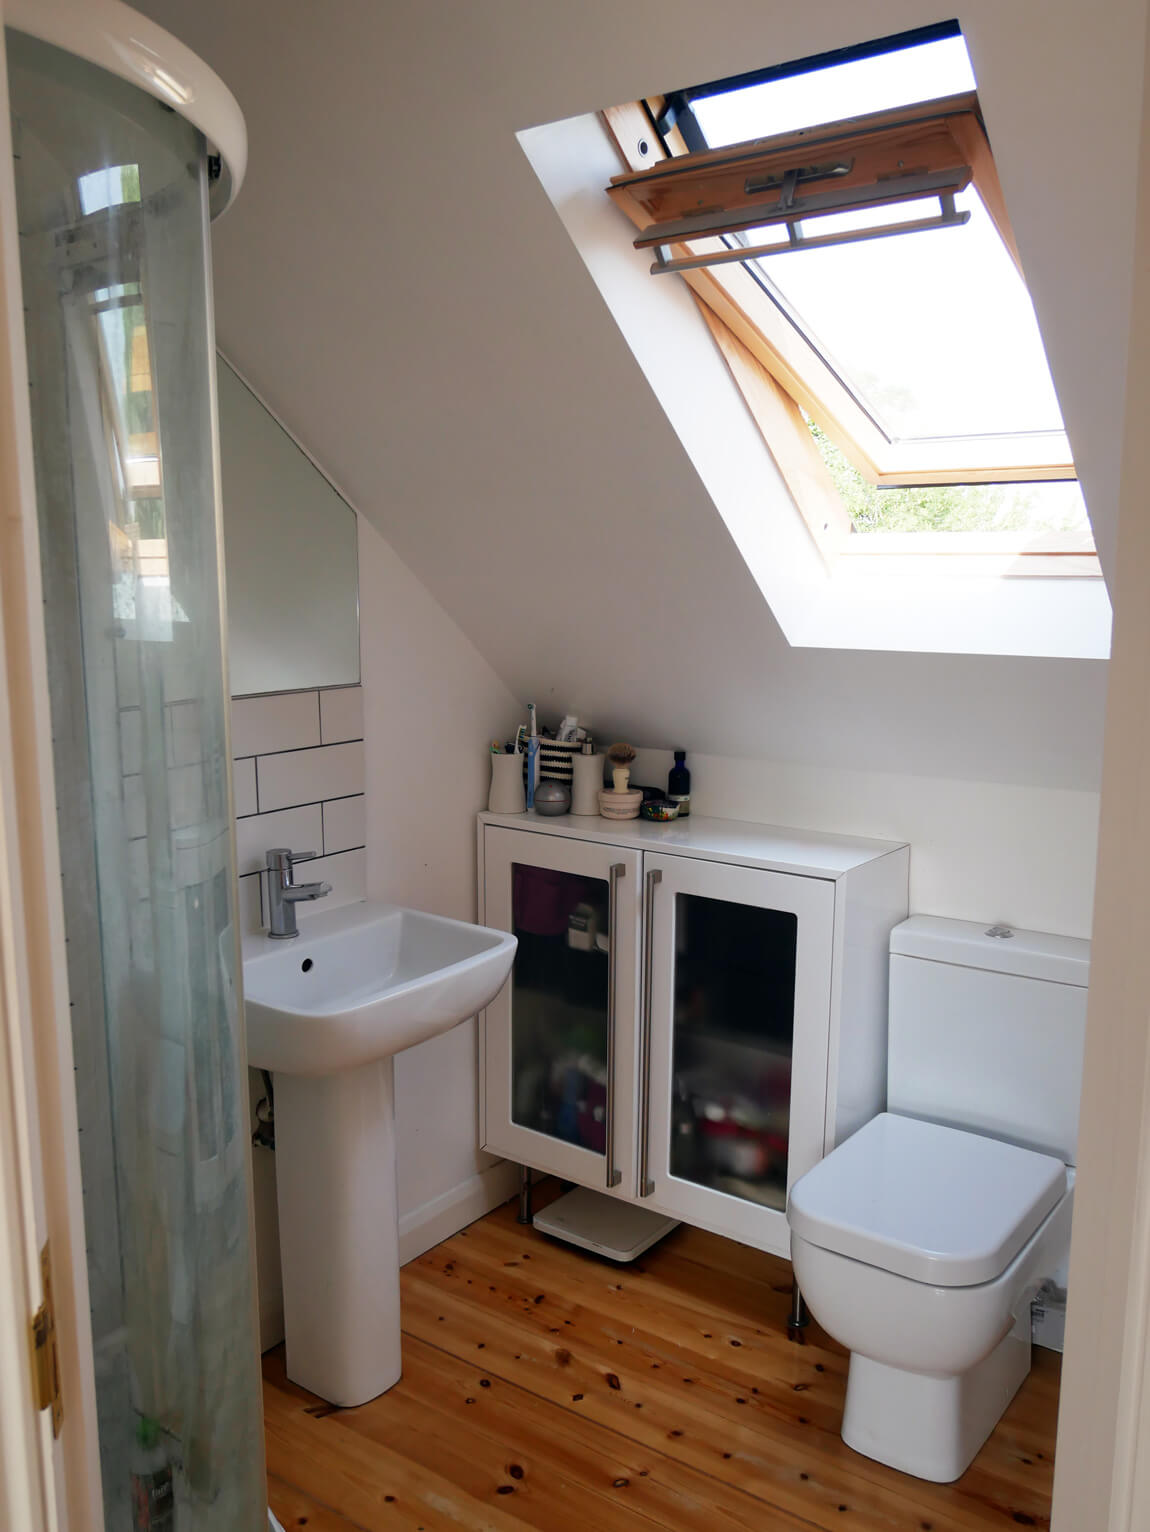 Even the bathroom gives a pleasurable view over the South Downs! The window is large and shoulder height for accessibility.